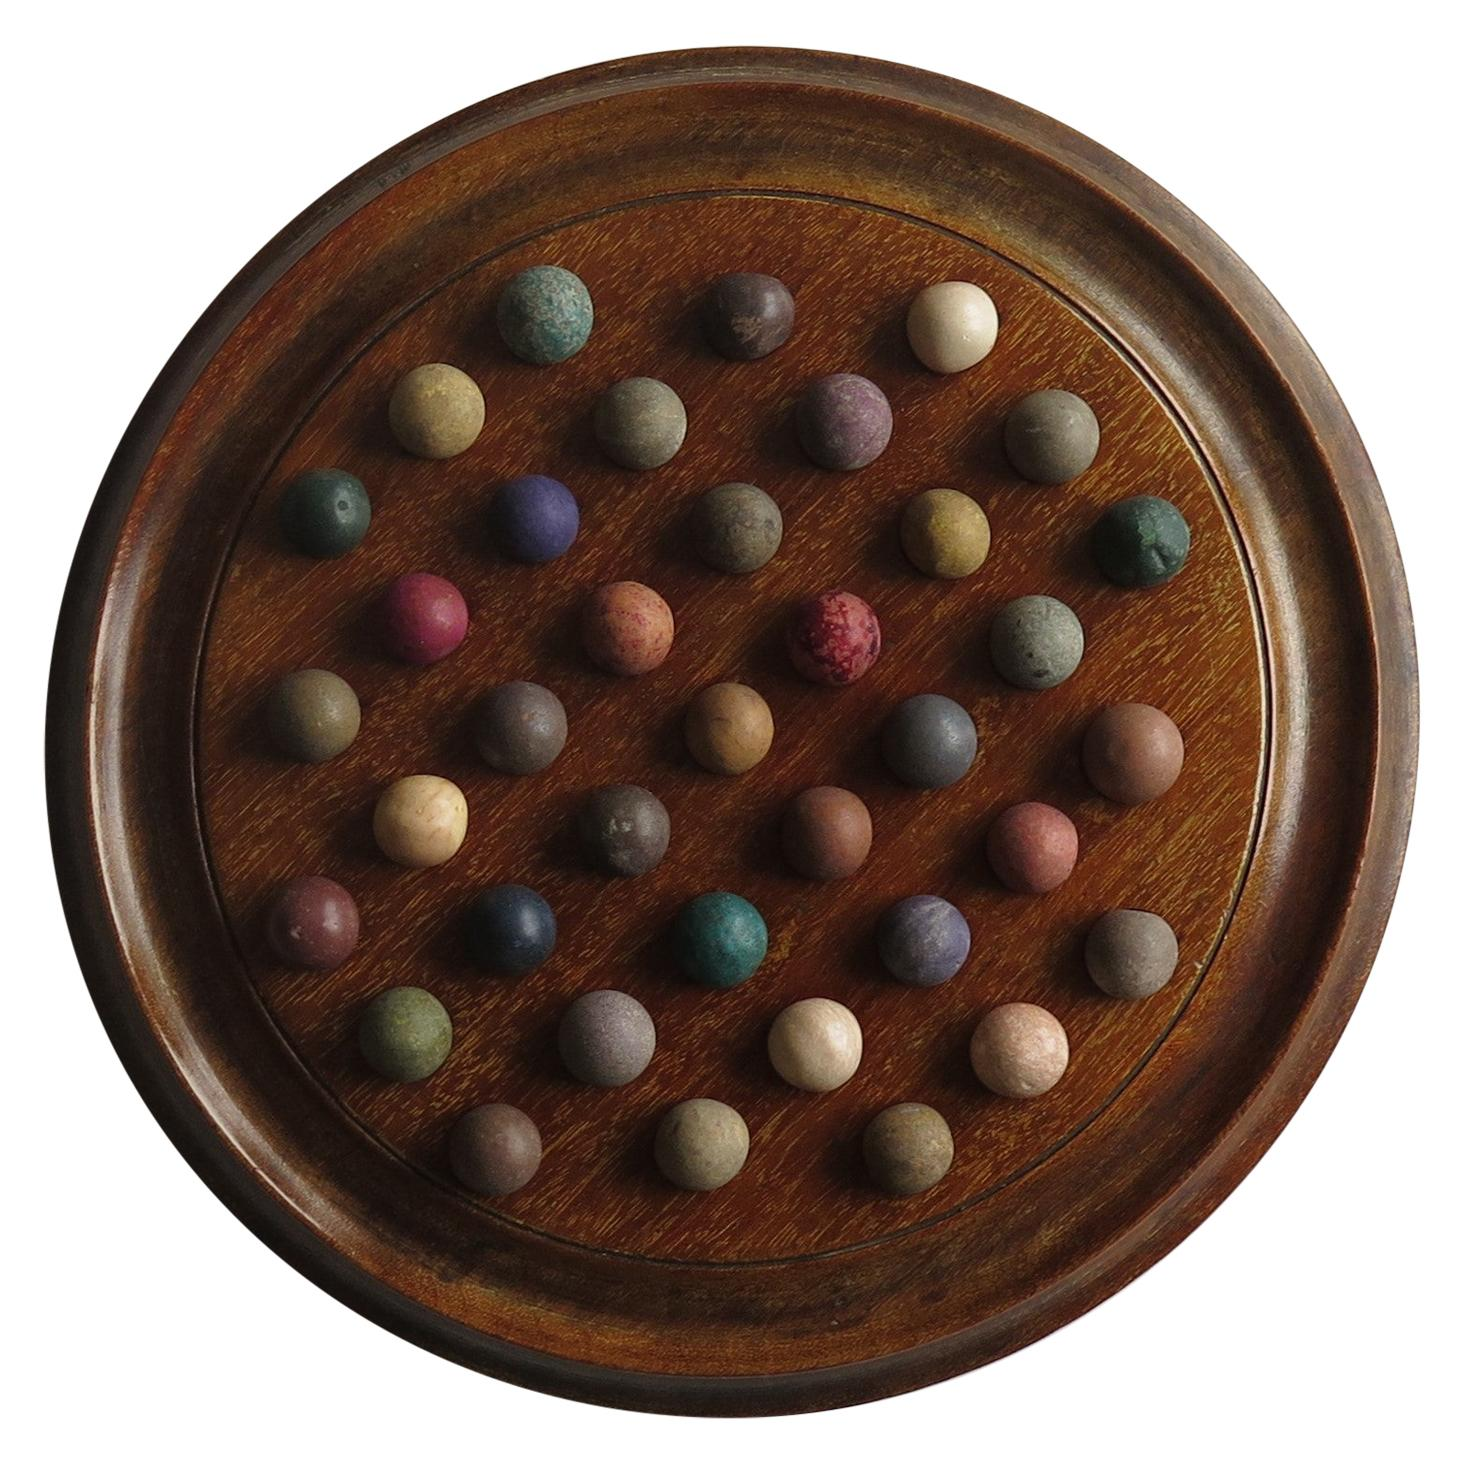 Victorian Marble Solitaire Game Mahogany Board 37 Handmade Clay or Stone Marbles